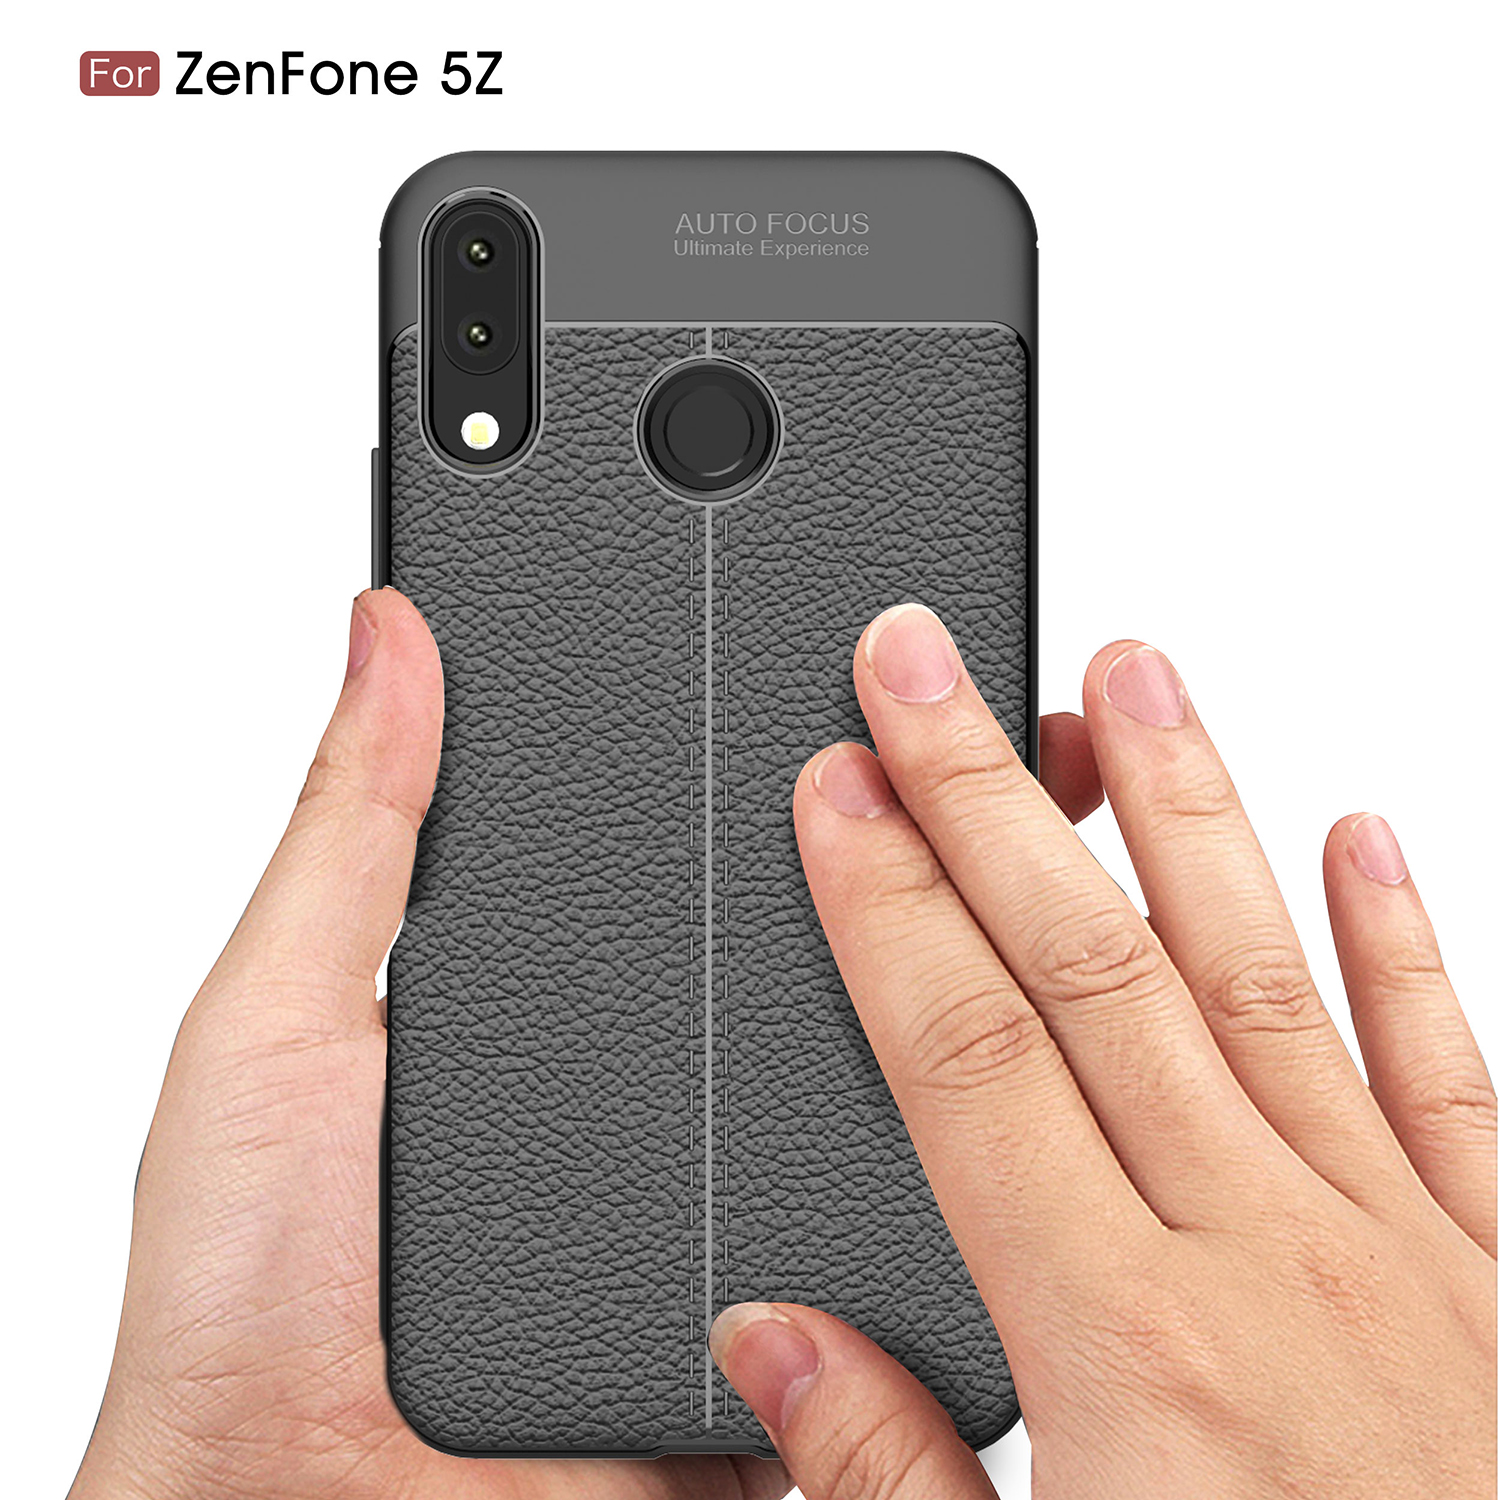 For Phone Cover Asus Zenfone 5Z Zenfone 5 ZE620KL Case Luxury Litchi Leather Pattern TPU Shell sFor Asus Zenfone 5 2018 Case in Fitted Cases from Cellphones Telecommunications